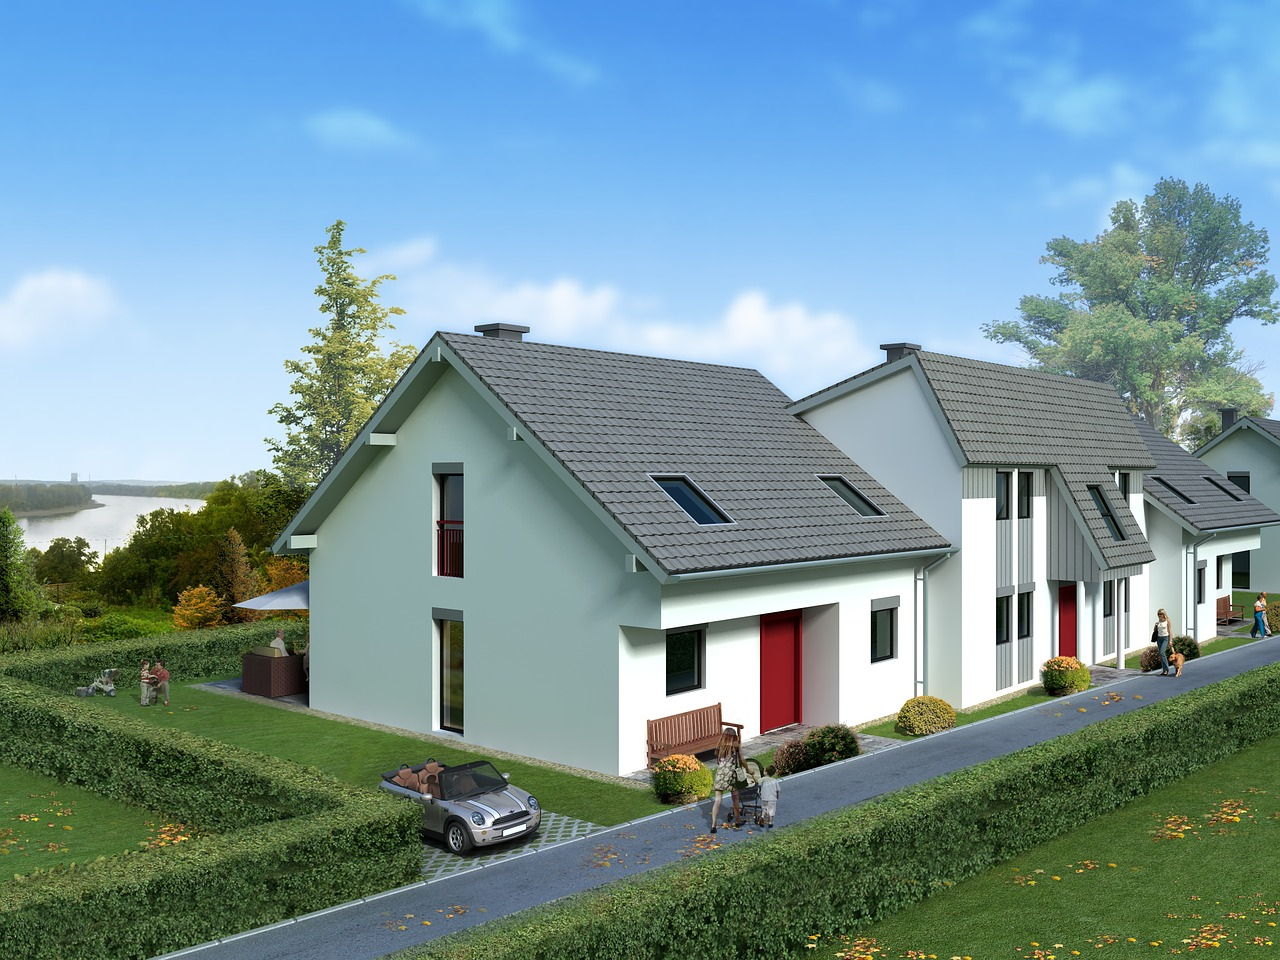 Diagnostic immobilier dans le Jura